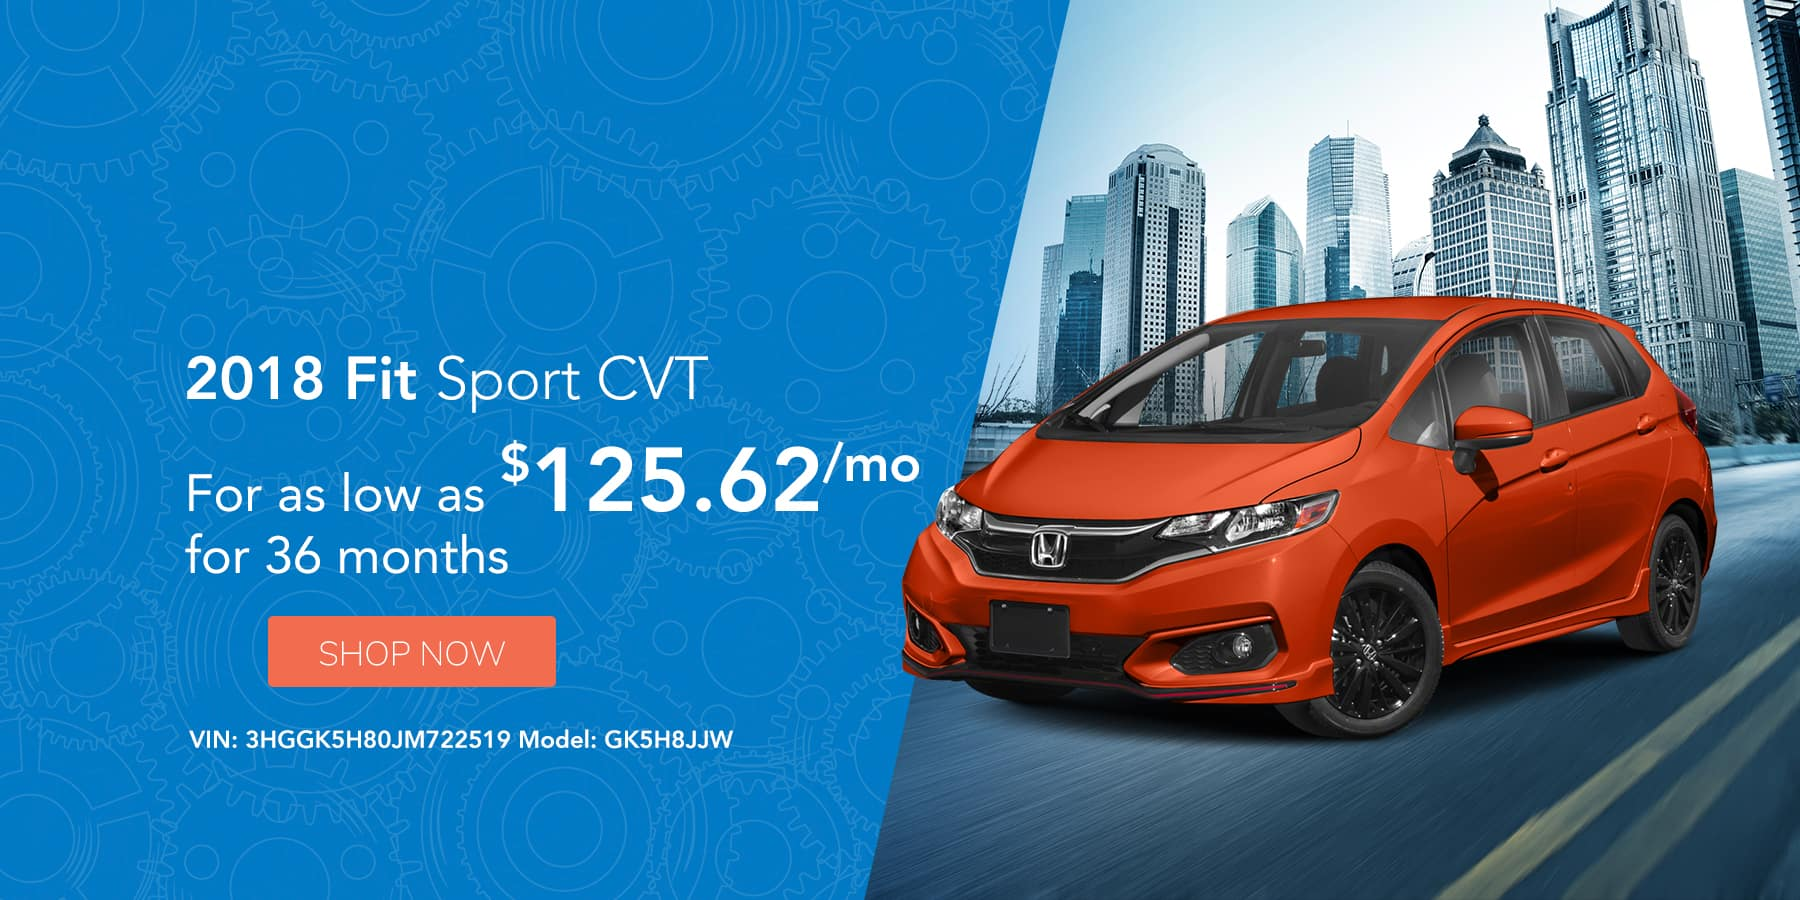 Honda Fit Offer